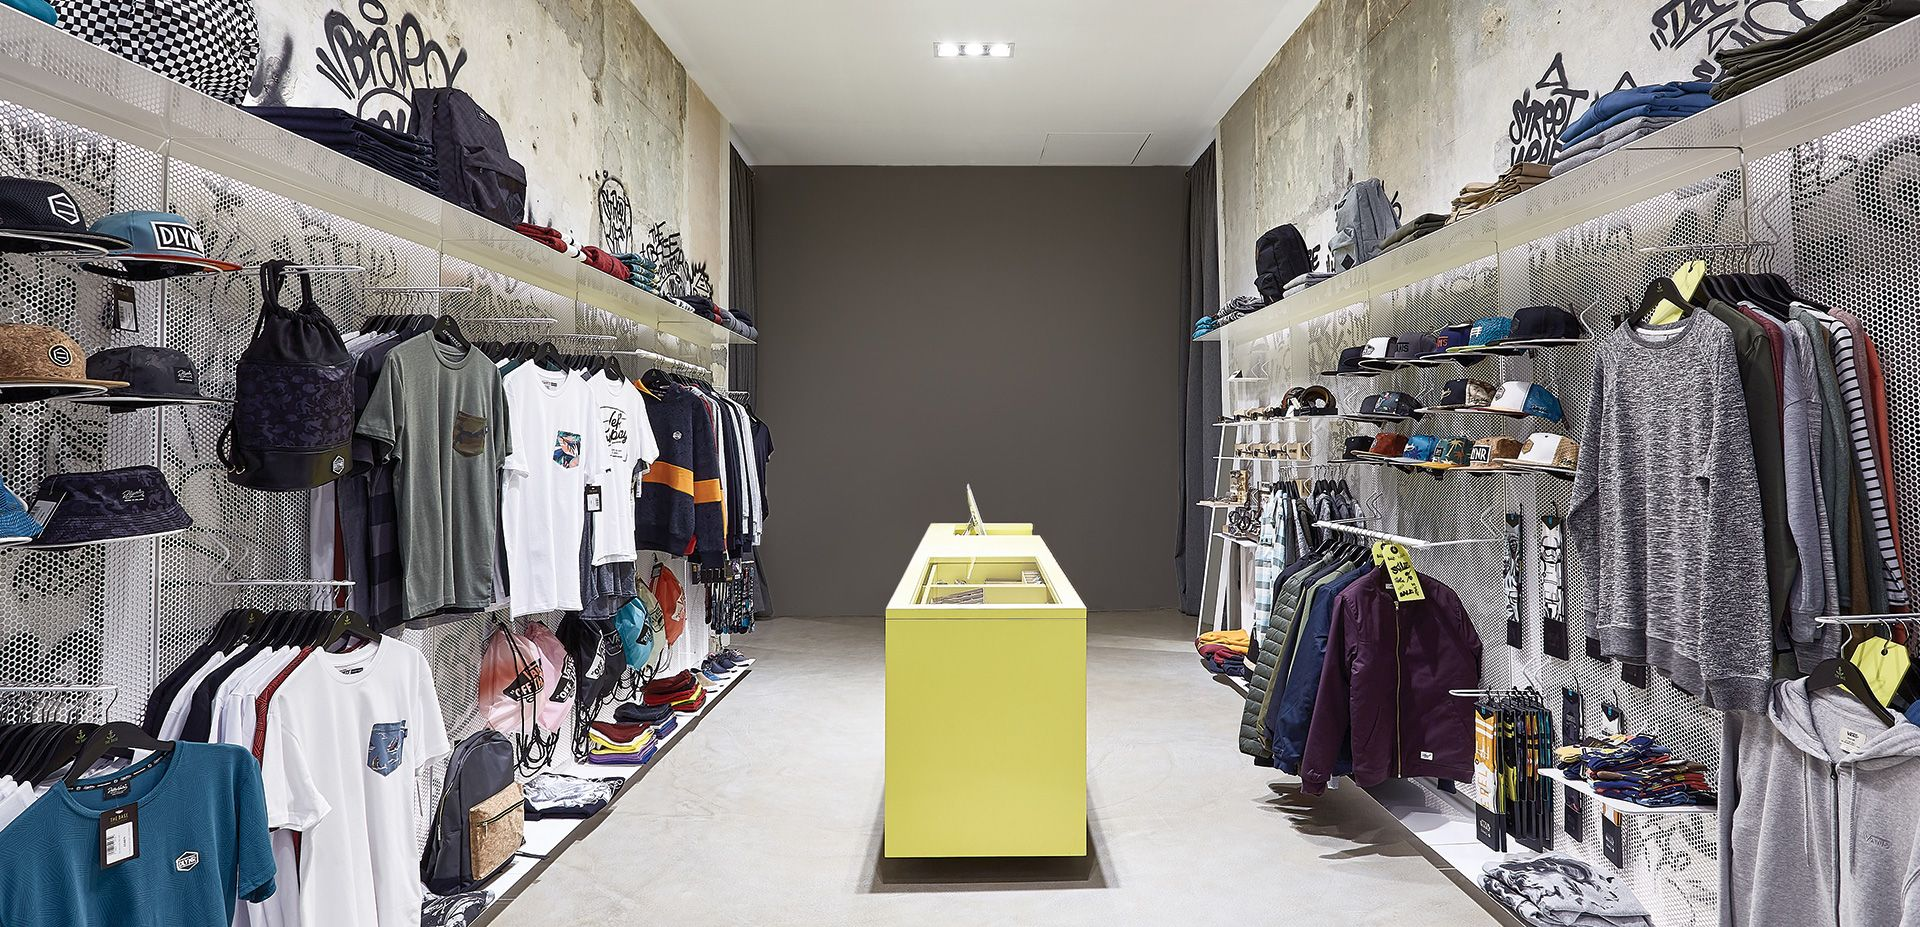 new product d6d53 fa9c6 THE BASE STREETWEAR SHOP - POSITION Collective   Interiors ...